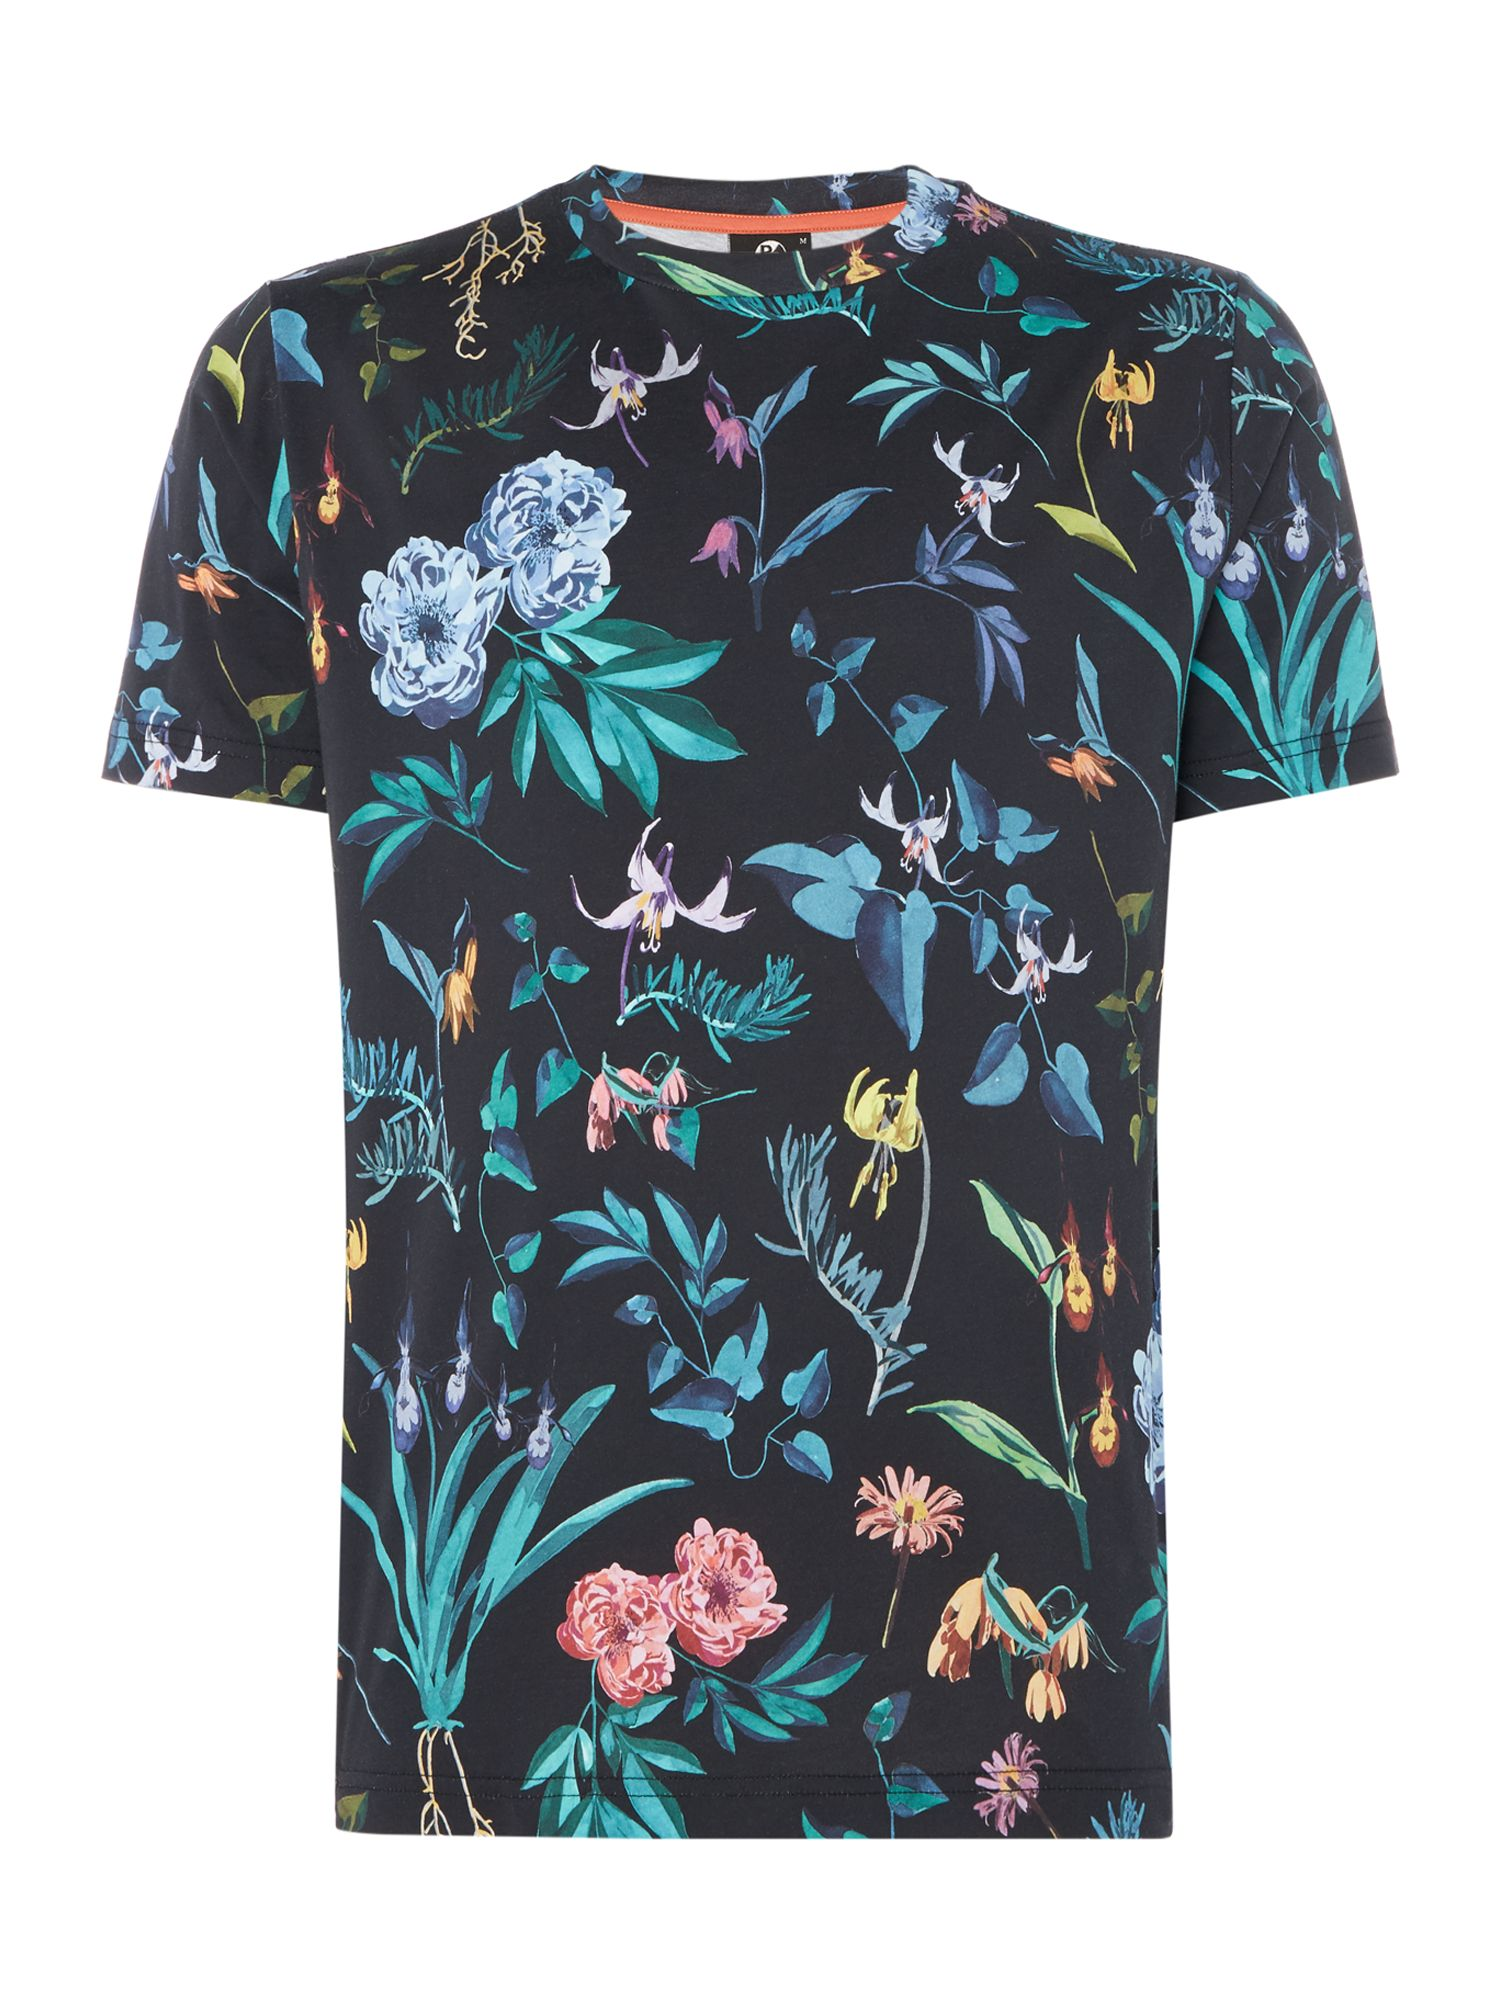 Men's PS By Paul Smith Black alpine floral print t-shirt, Black